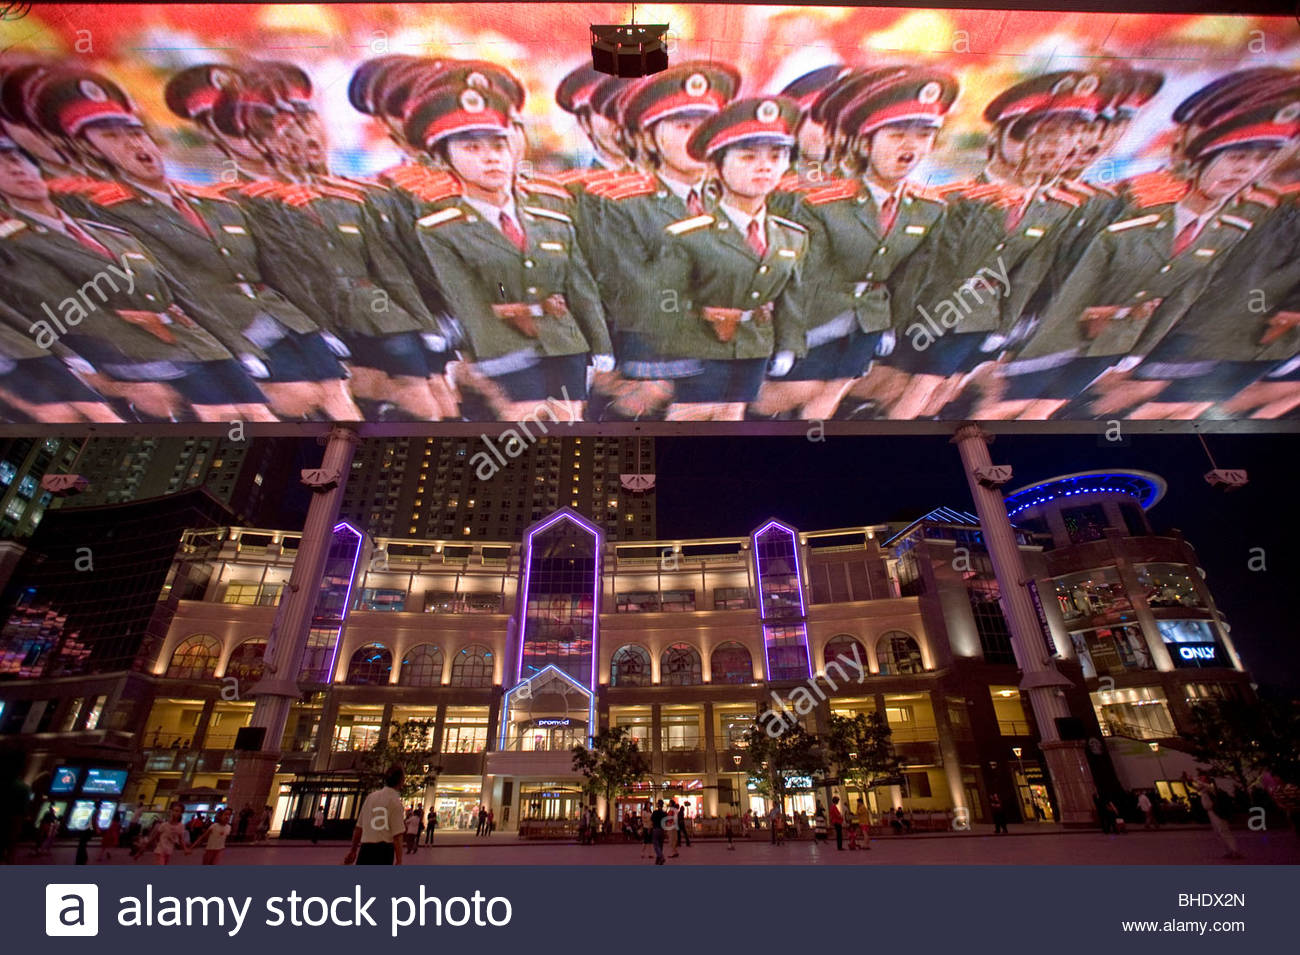 The largest LED TV screen in the world is 250m long and 30m wide, is part of 'The Place' shopping mall and - Stock Image